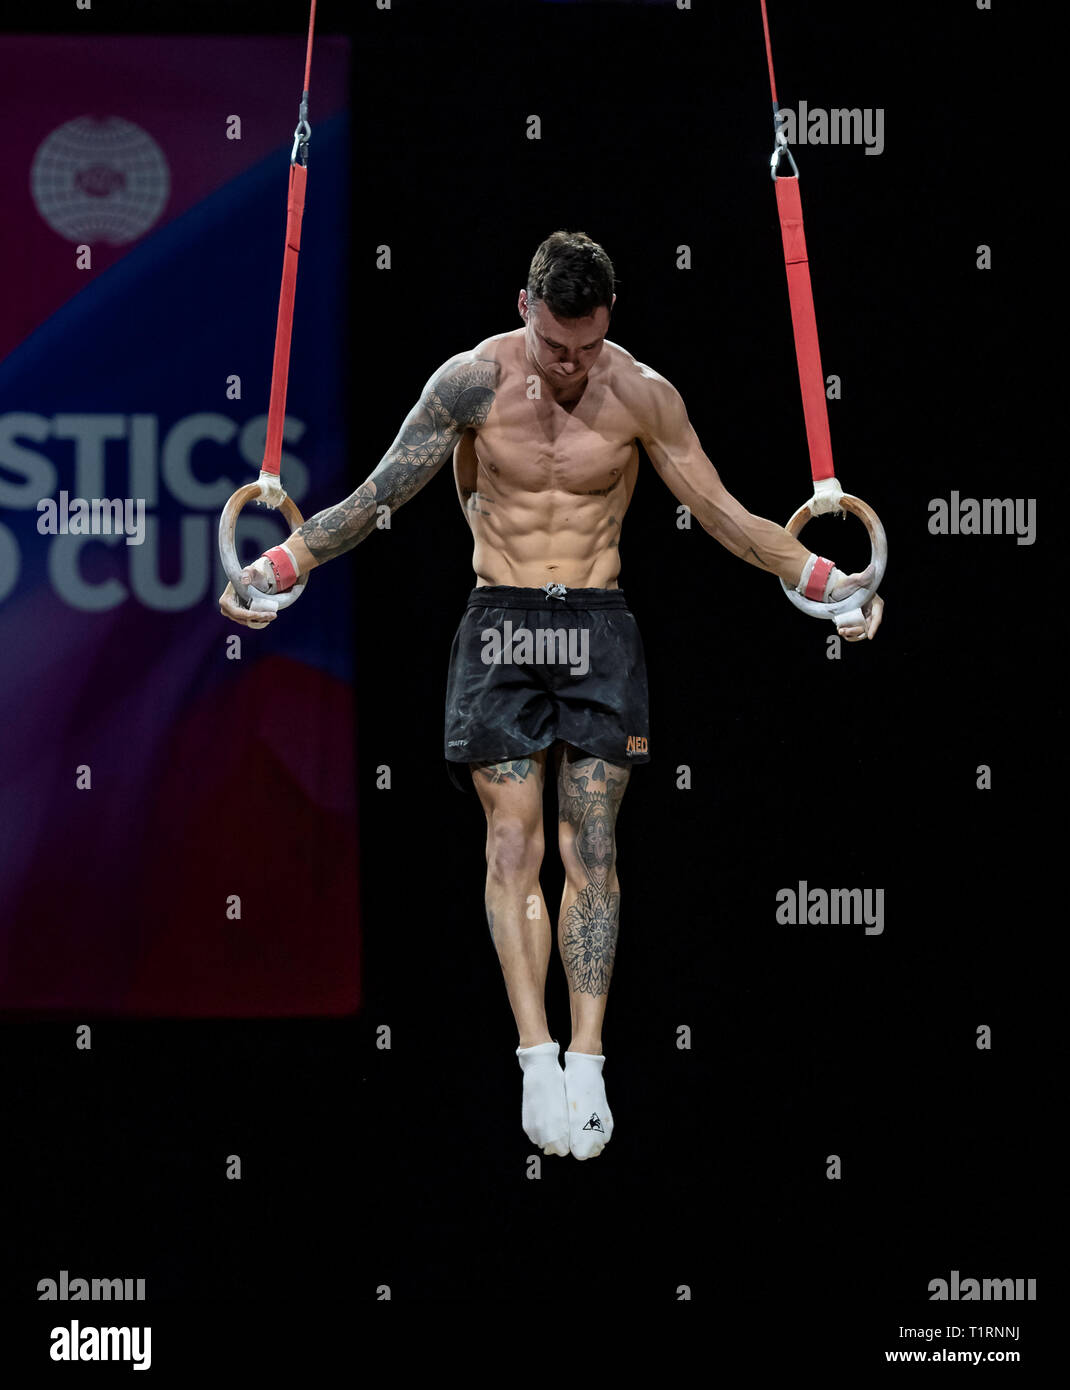 22.03.2019. Resorts World Arena, Birmingham, England. The Gymnastics World Cup 2019 Bart Deurloo (NED) during the Mens training session. Stock Photo